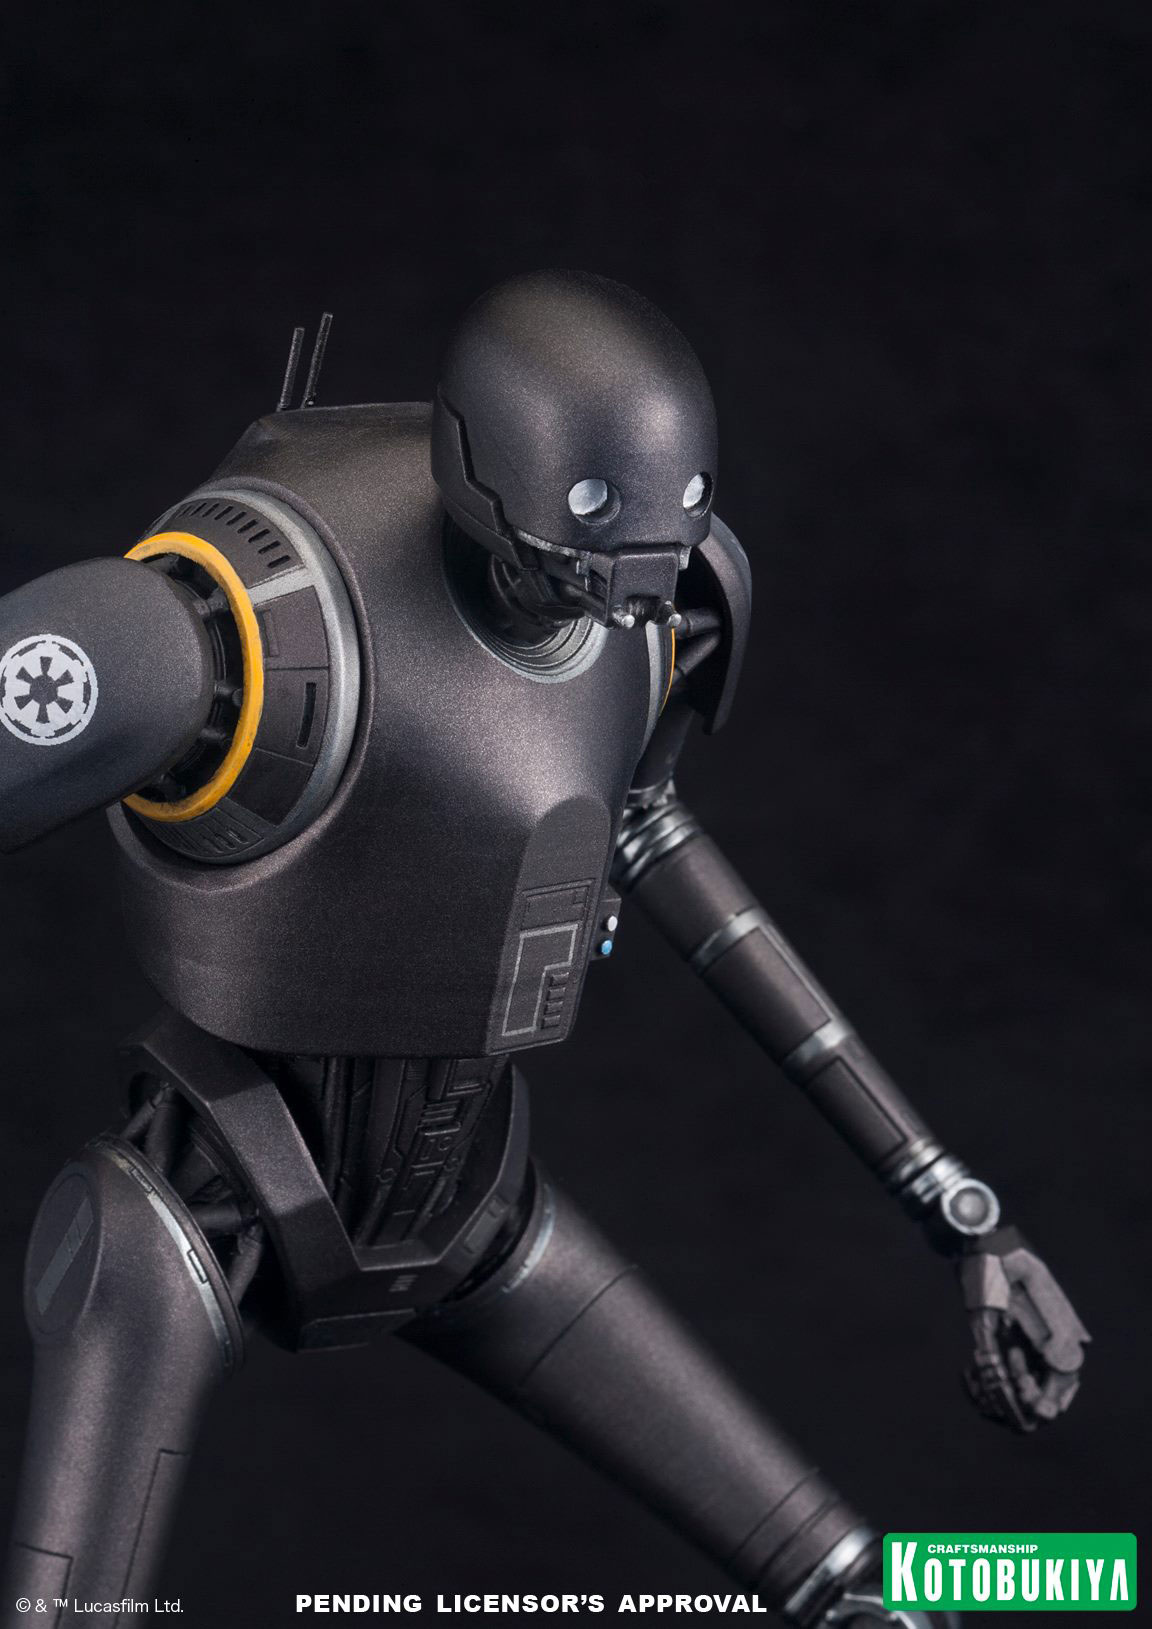 kotobukiya-star-wars-rogue-one-k-2so-artfx-statue-6